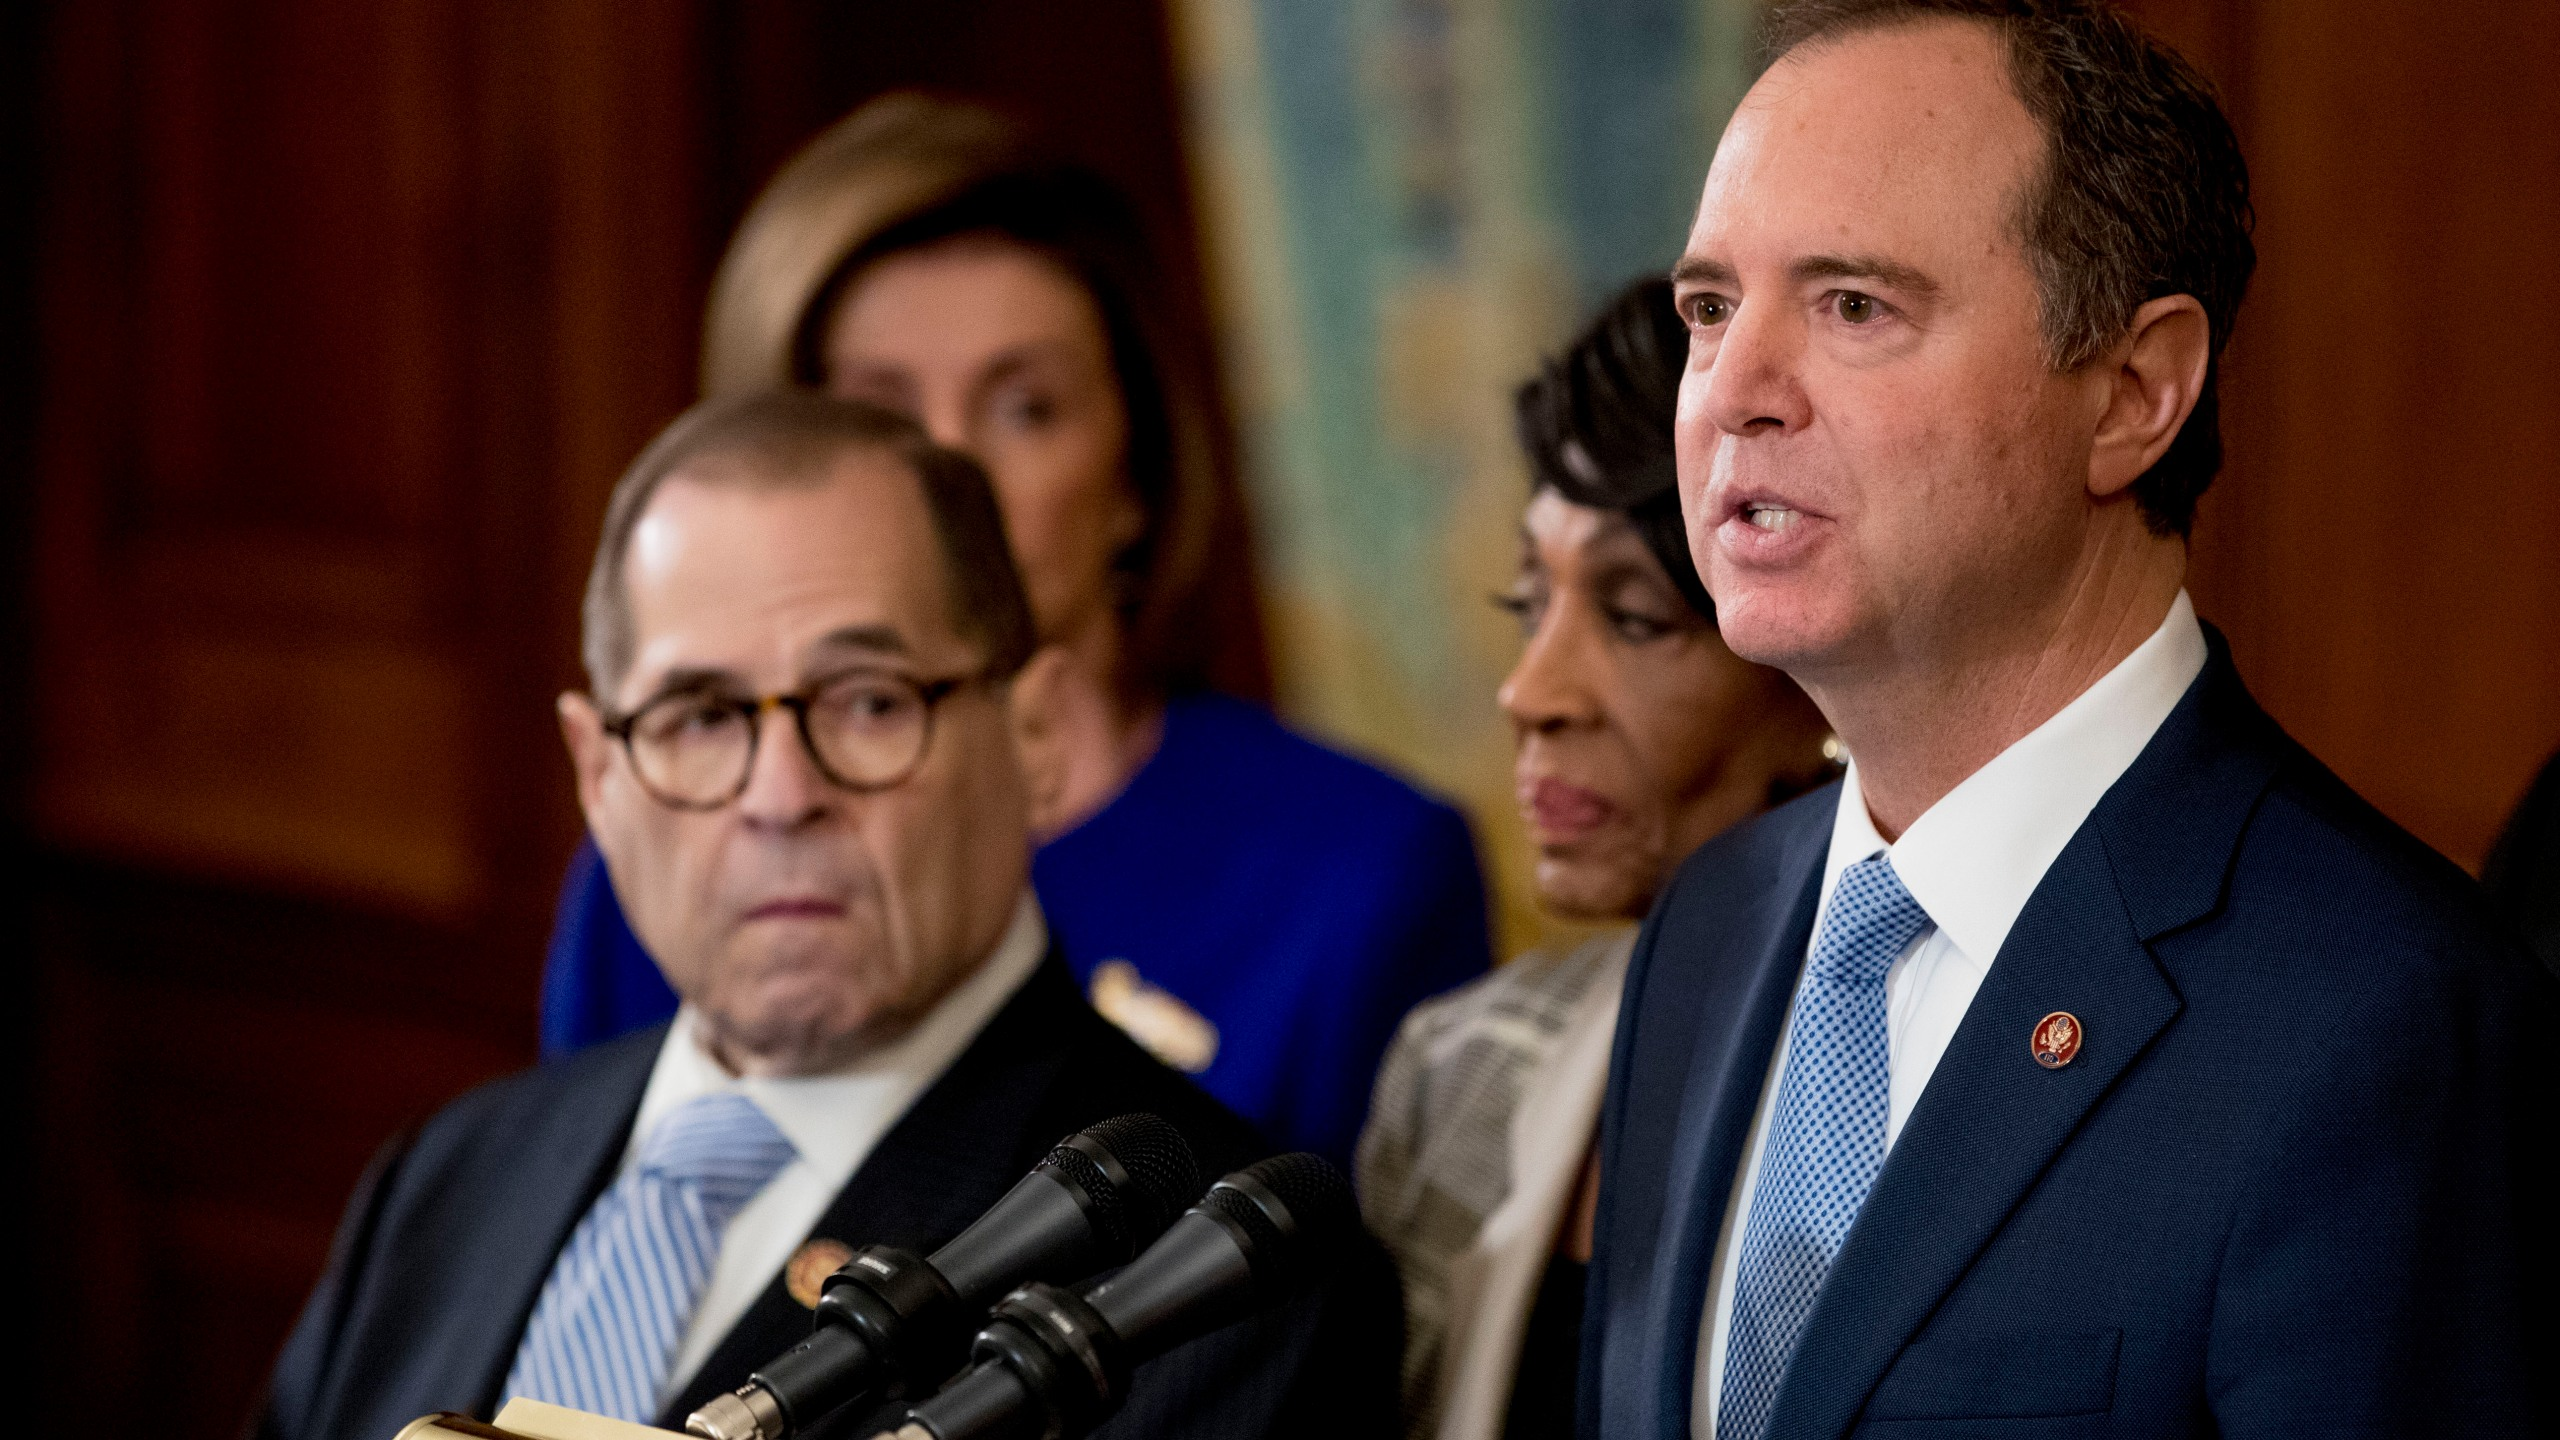 Jerrold Nadler, Adam Schiff, Nancy Pelosi, Maxine Waters